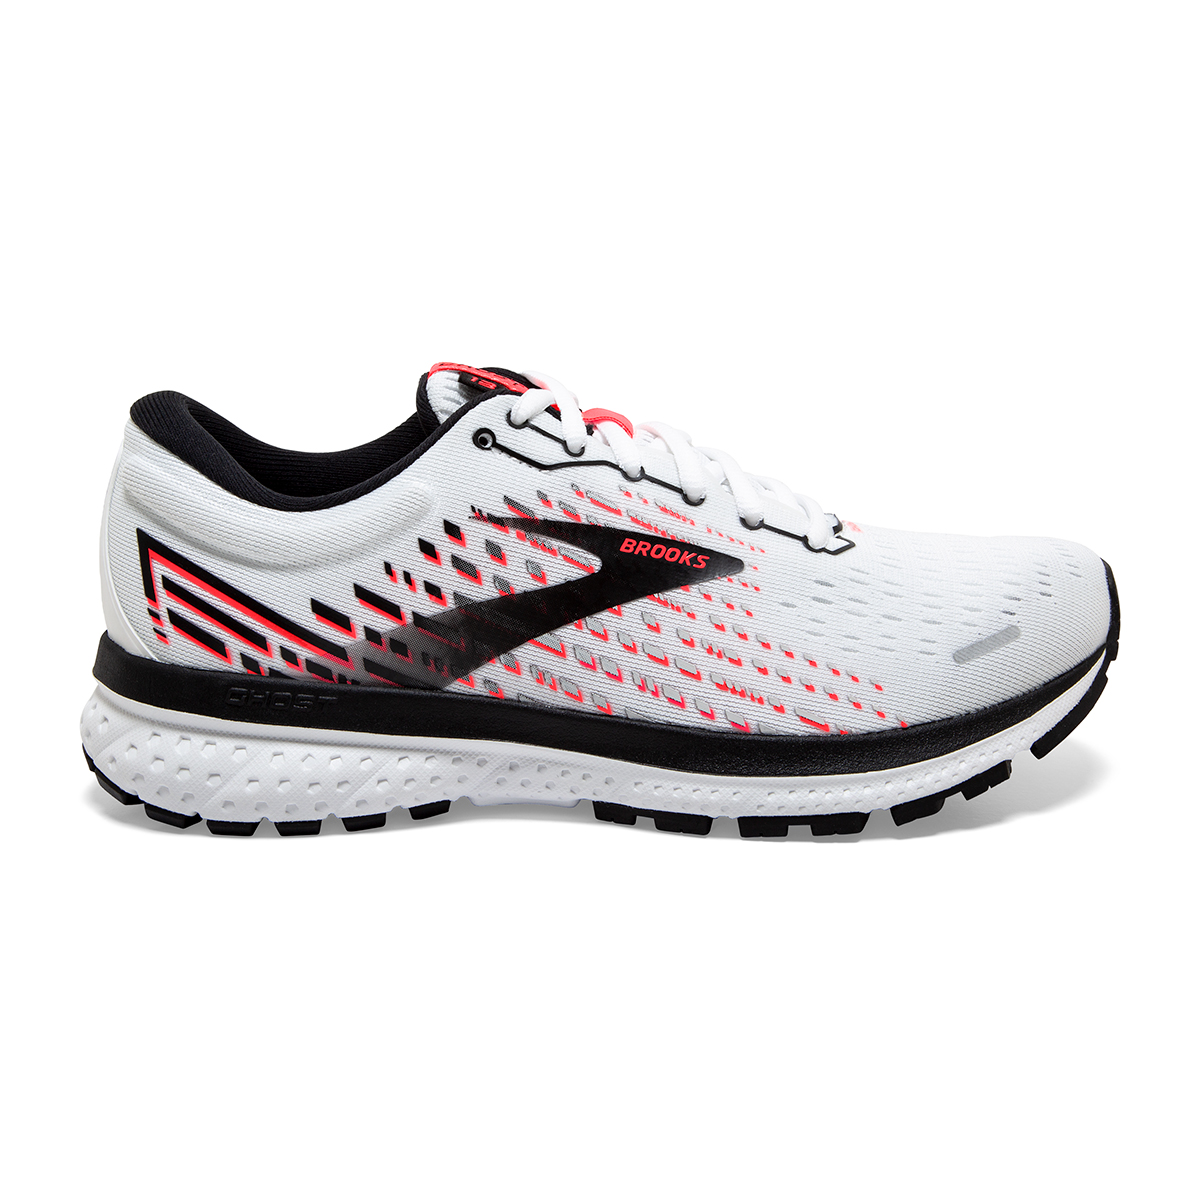 Women's Brooks Ghost 13 Running Shoe - Color: White/Pink/Black - Size: 5 - Width: Regular, White/Pink/Black, large, image 1